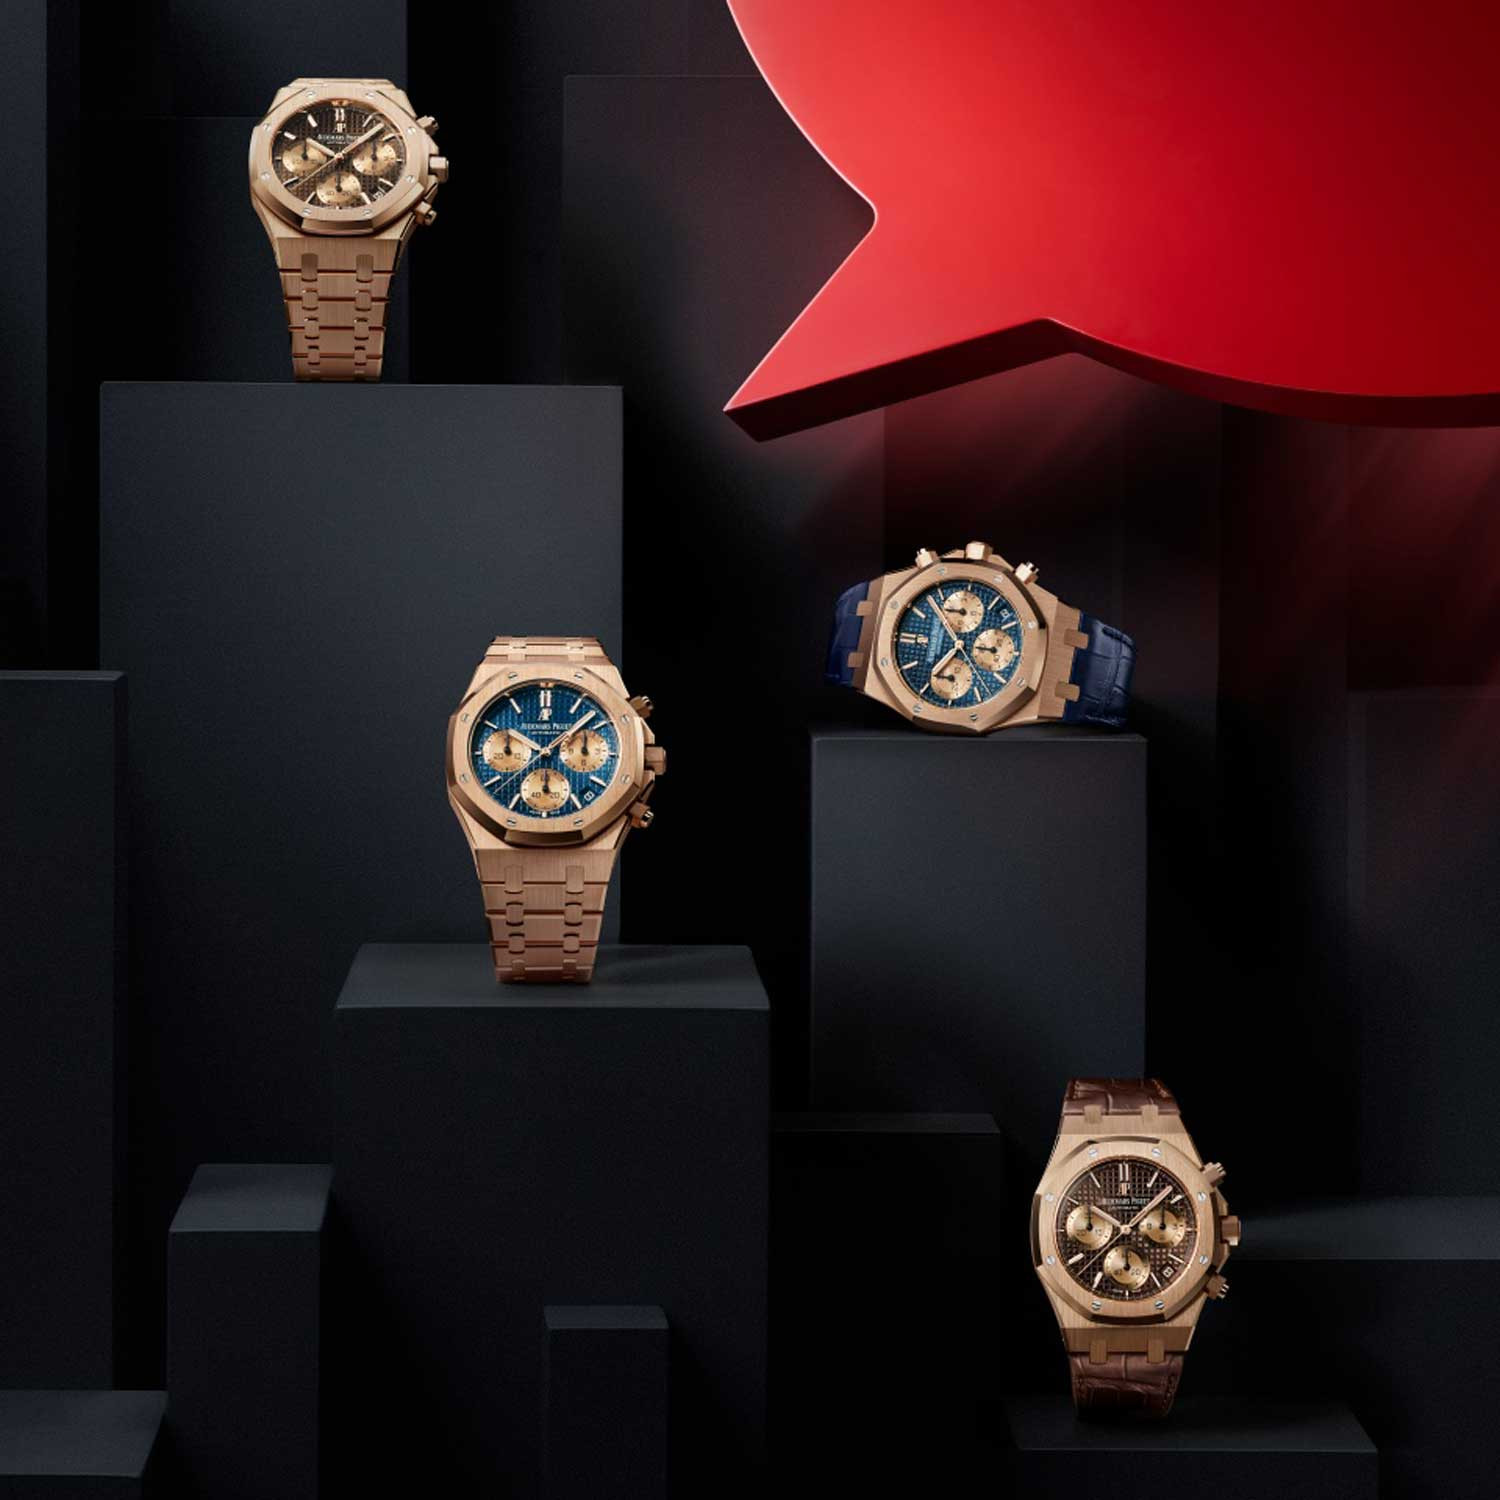 The new Royal Oak self-winding chronograph comes with two dial options executed in blue or brown dials.